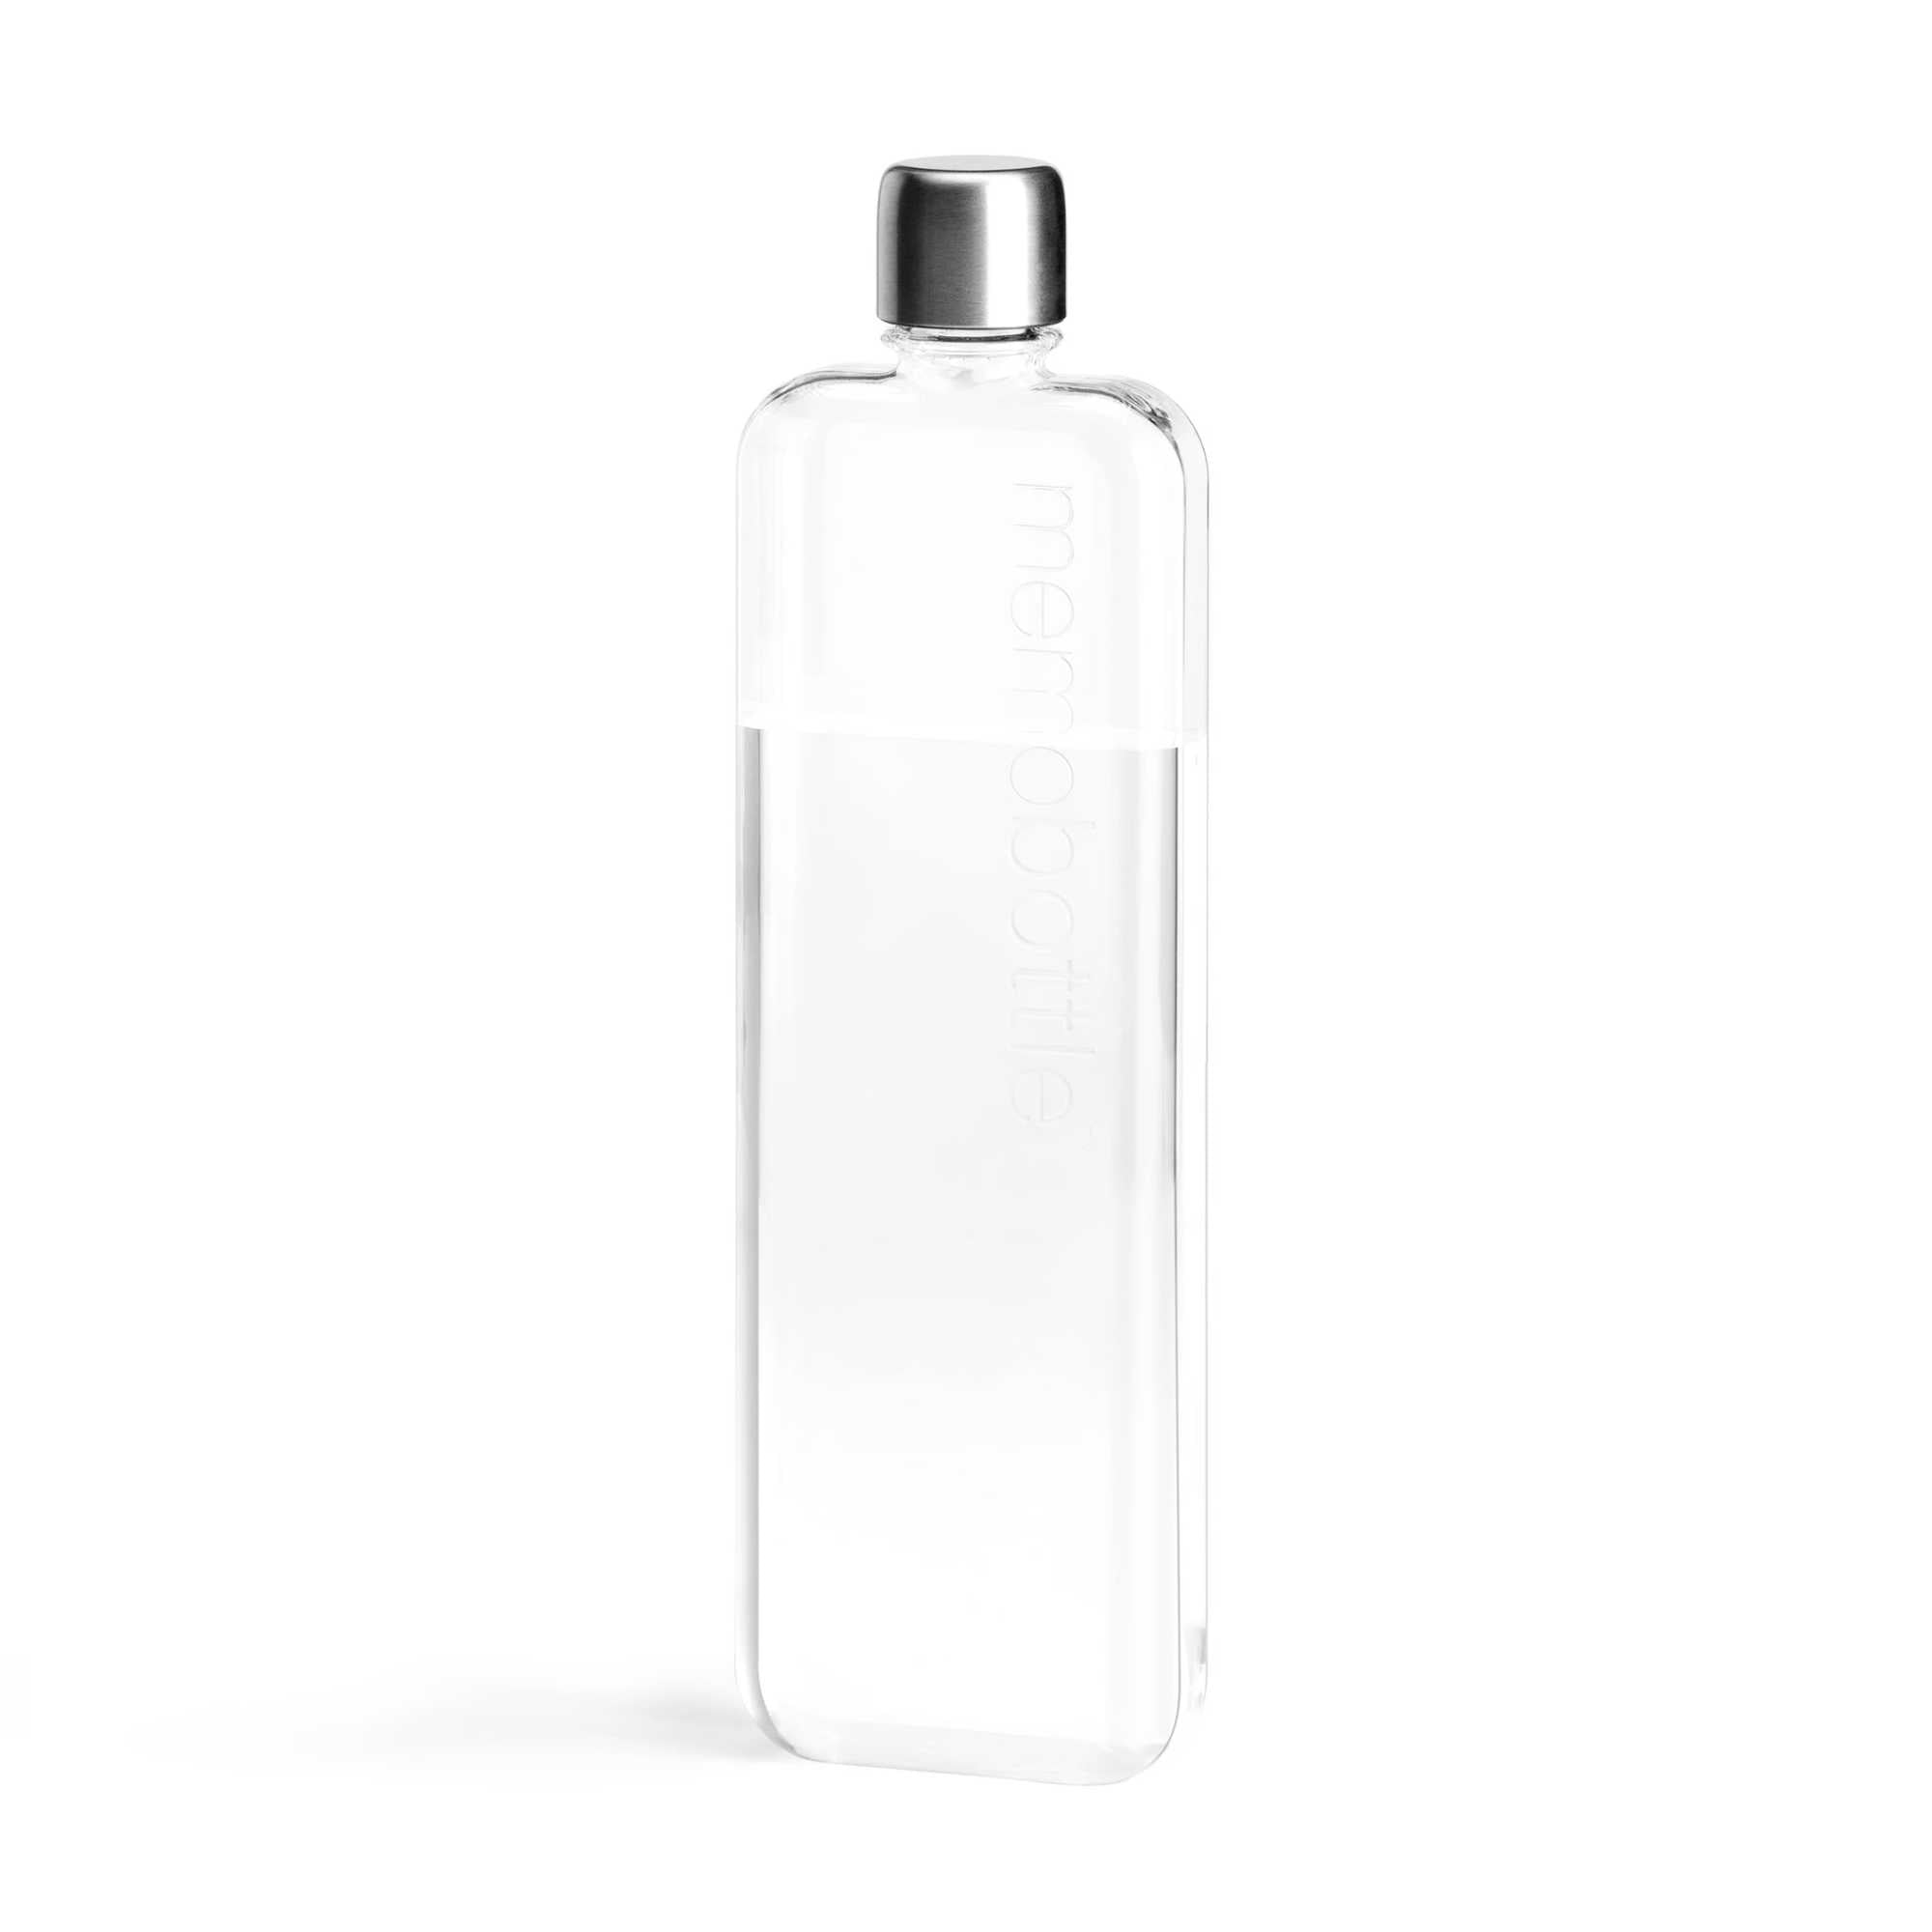 Memobottle Slim water bottle, 450ml